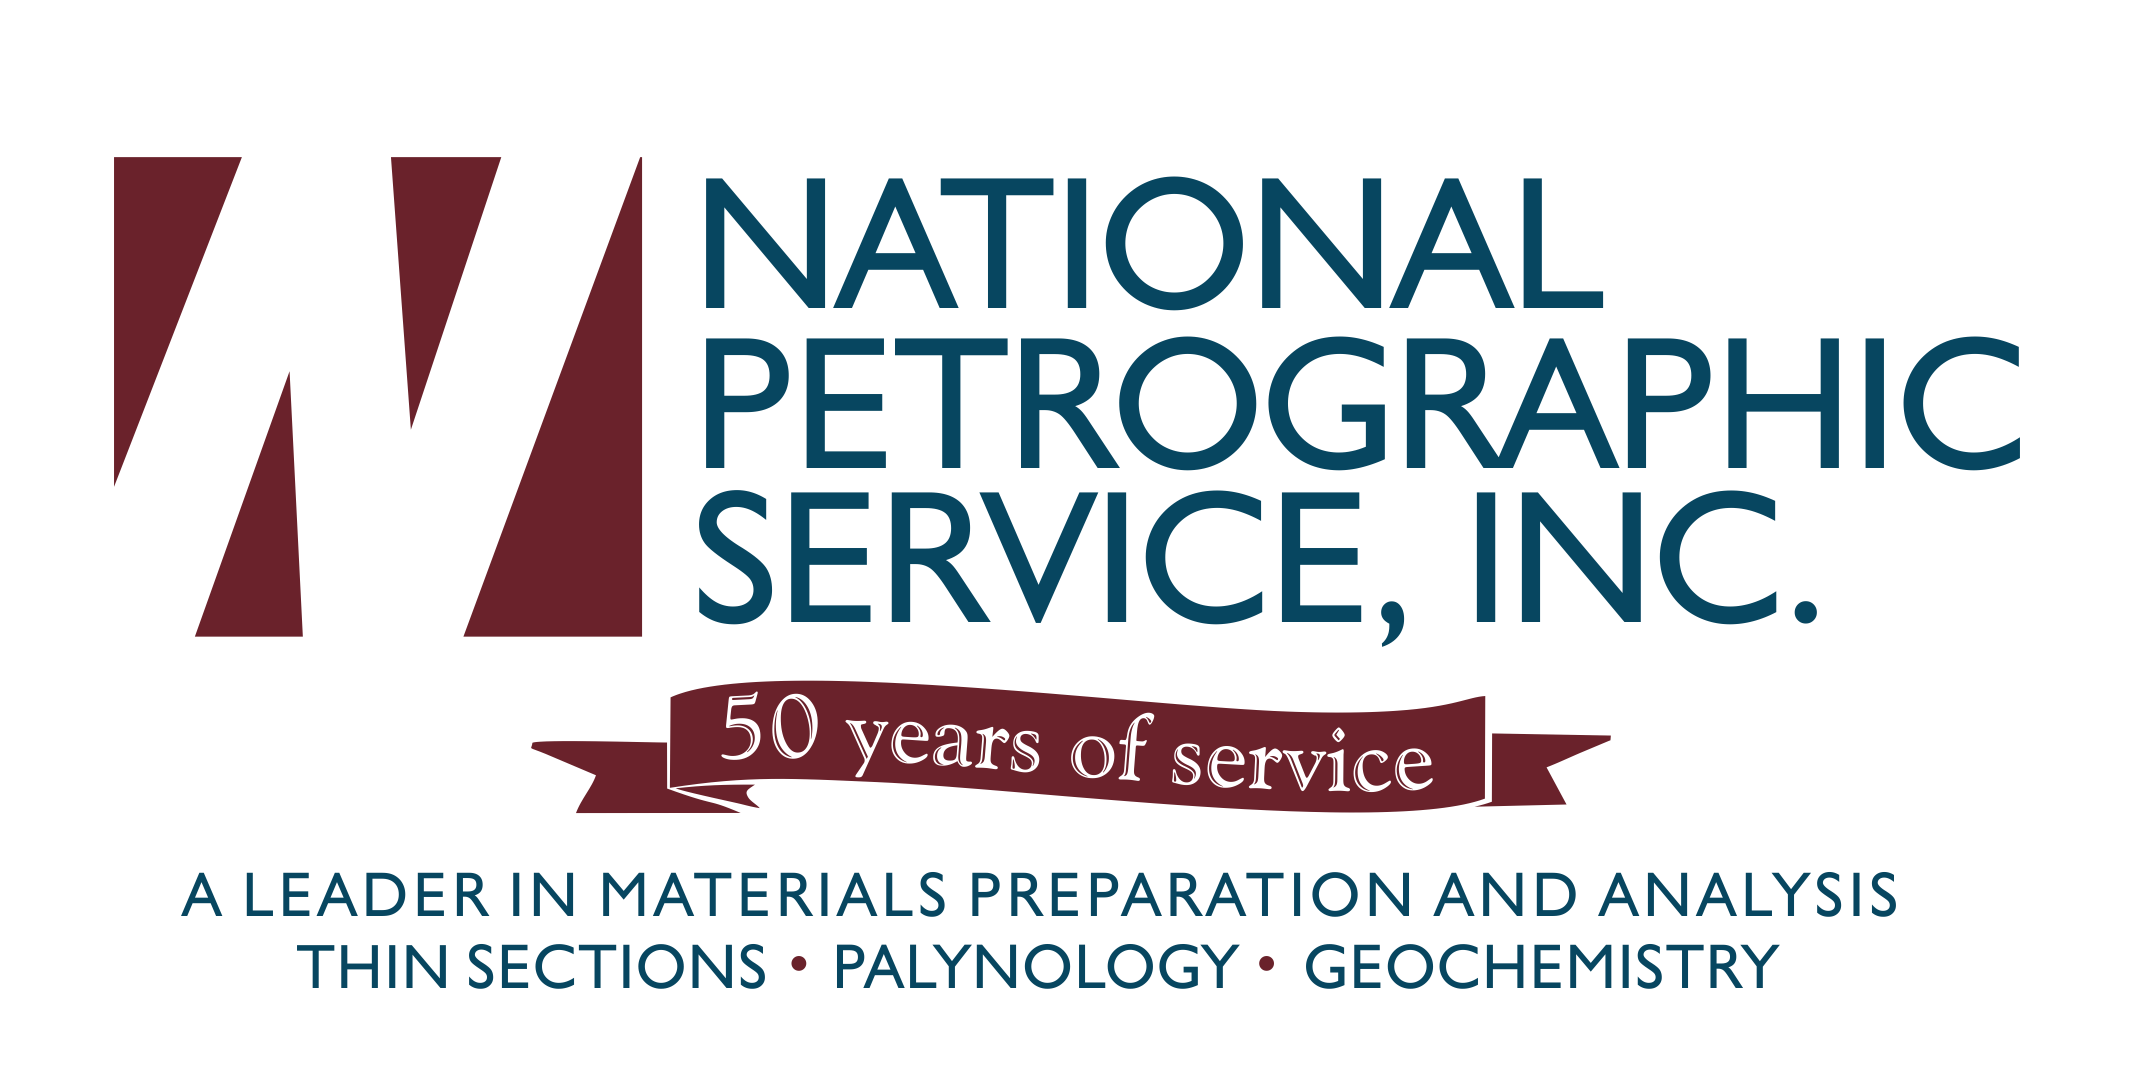 nationalpetrographic.com